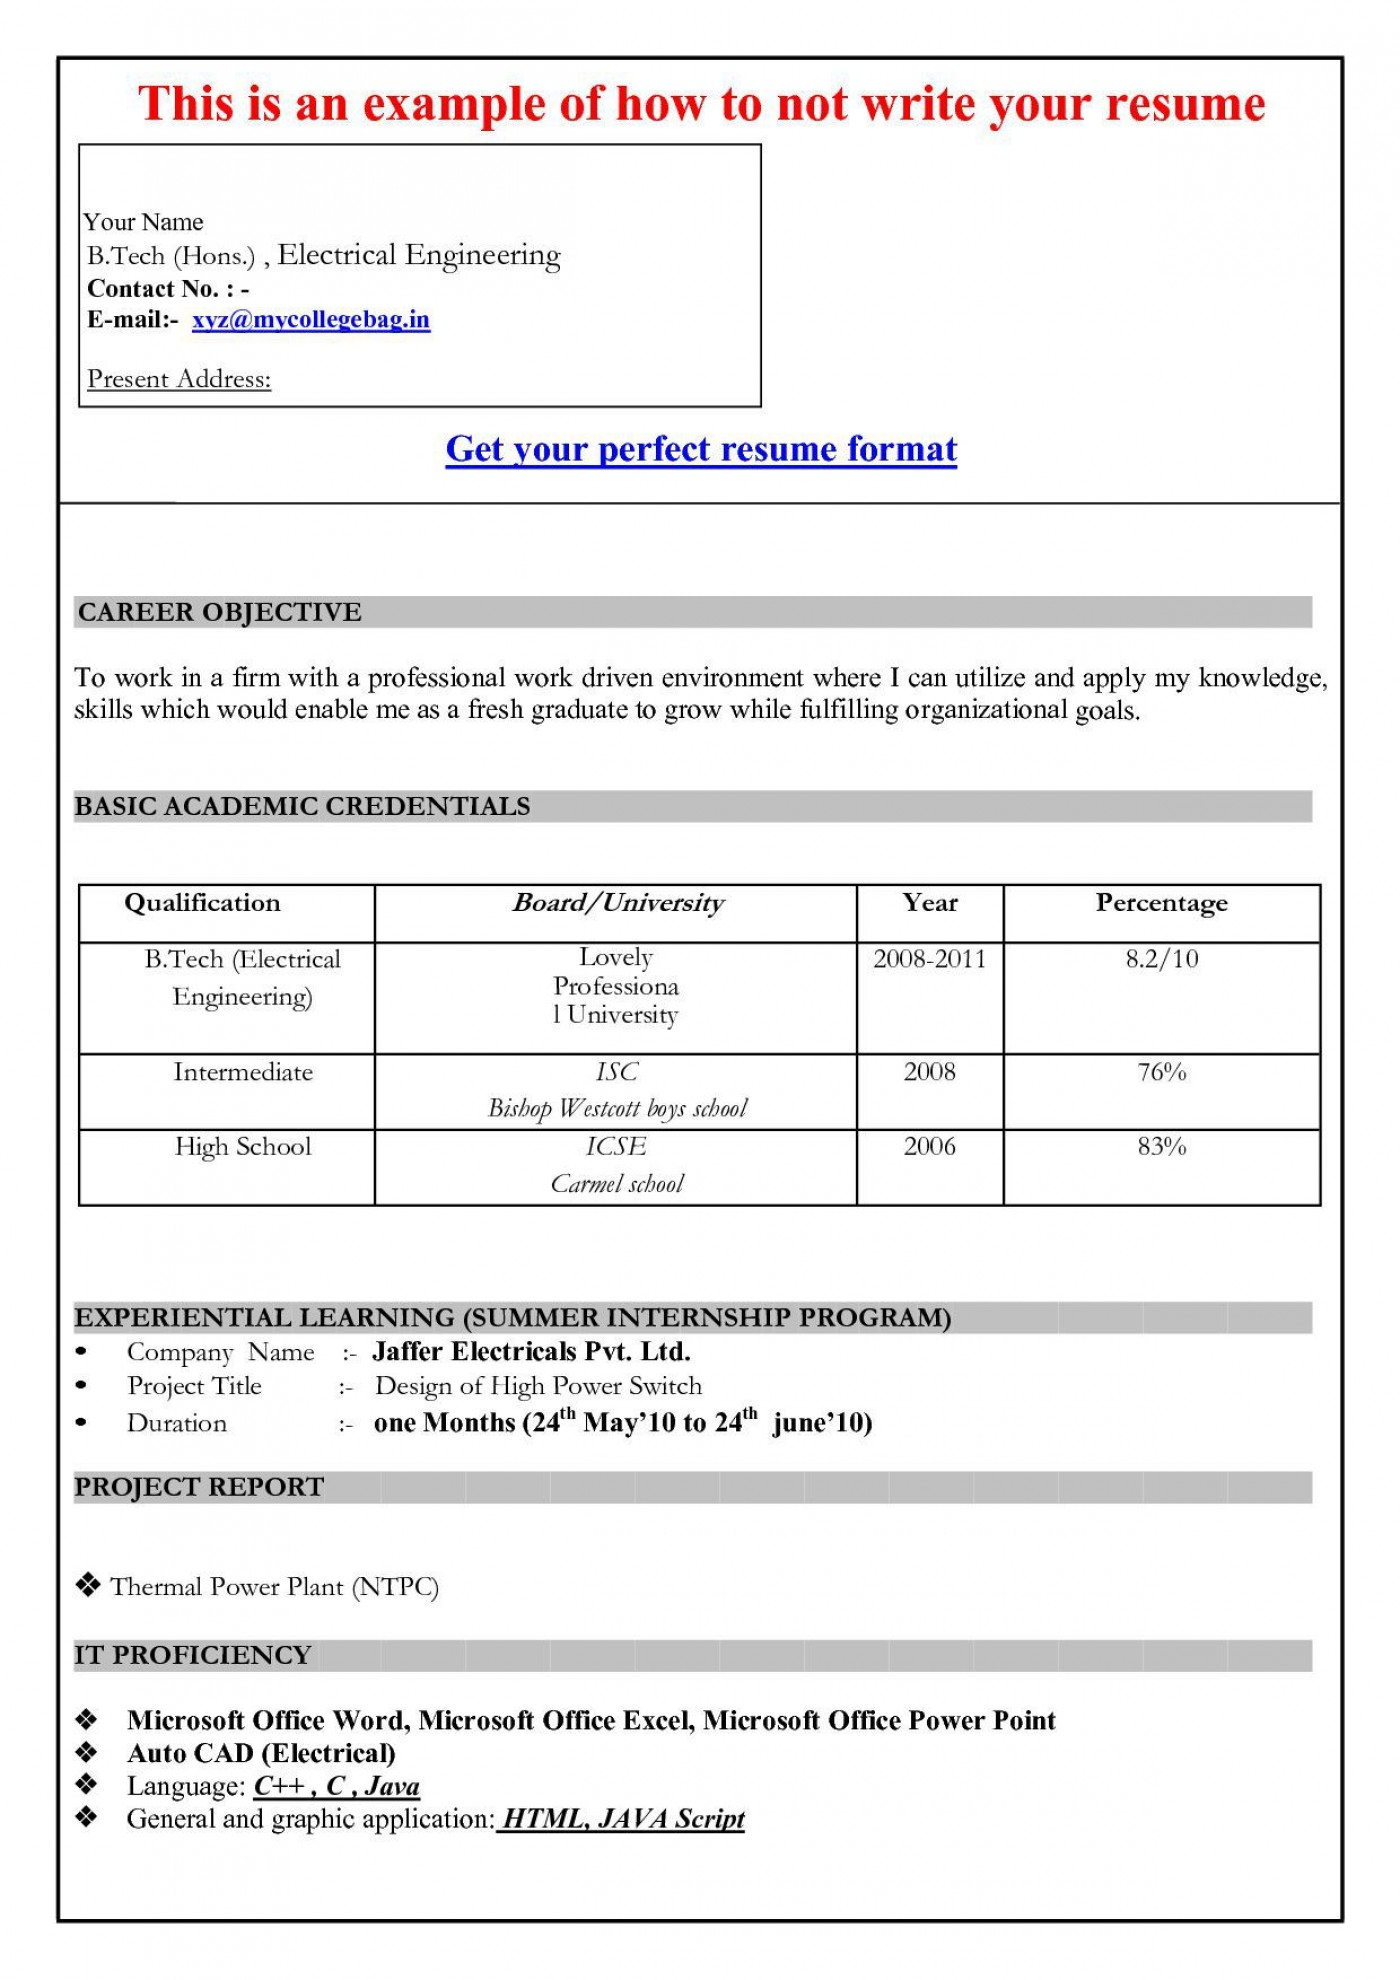 001 Unusual Download Resume Template Word 2007 Idea 1400